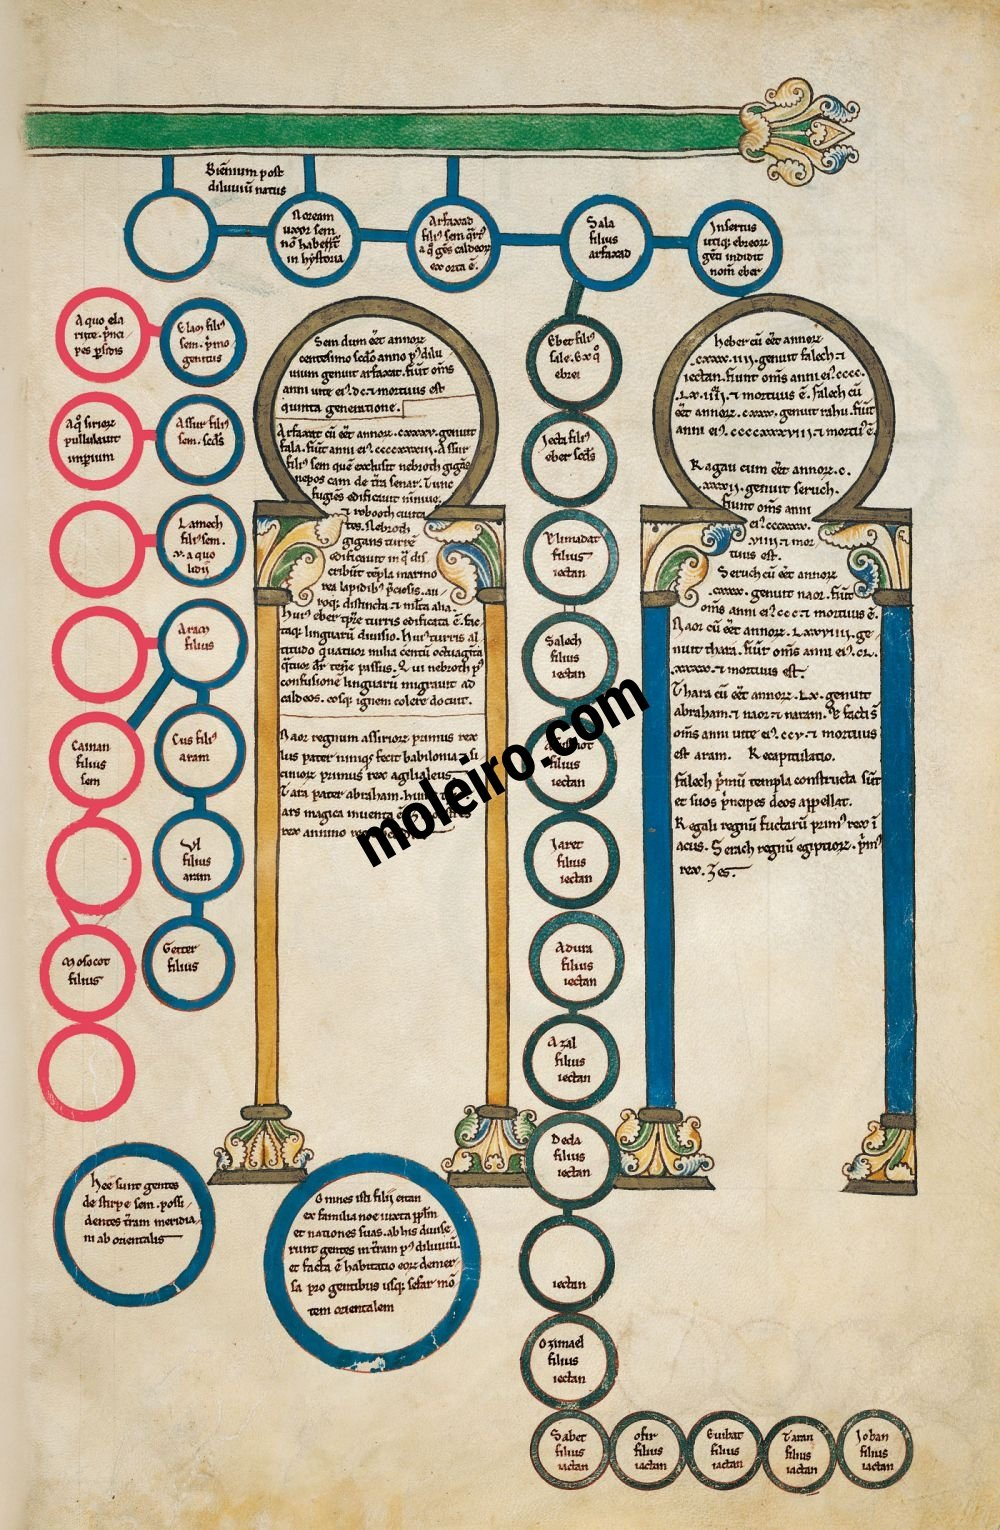 Cardeña Beatus f. 2A, Genealogy of Sem